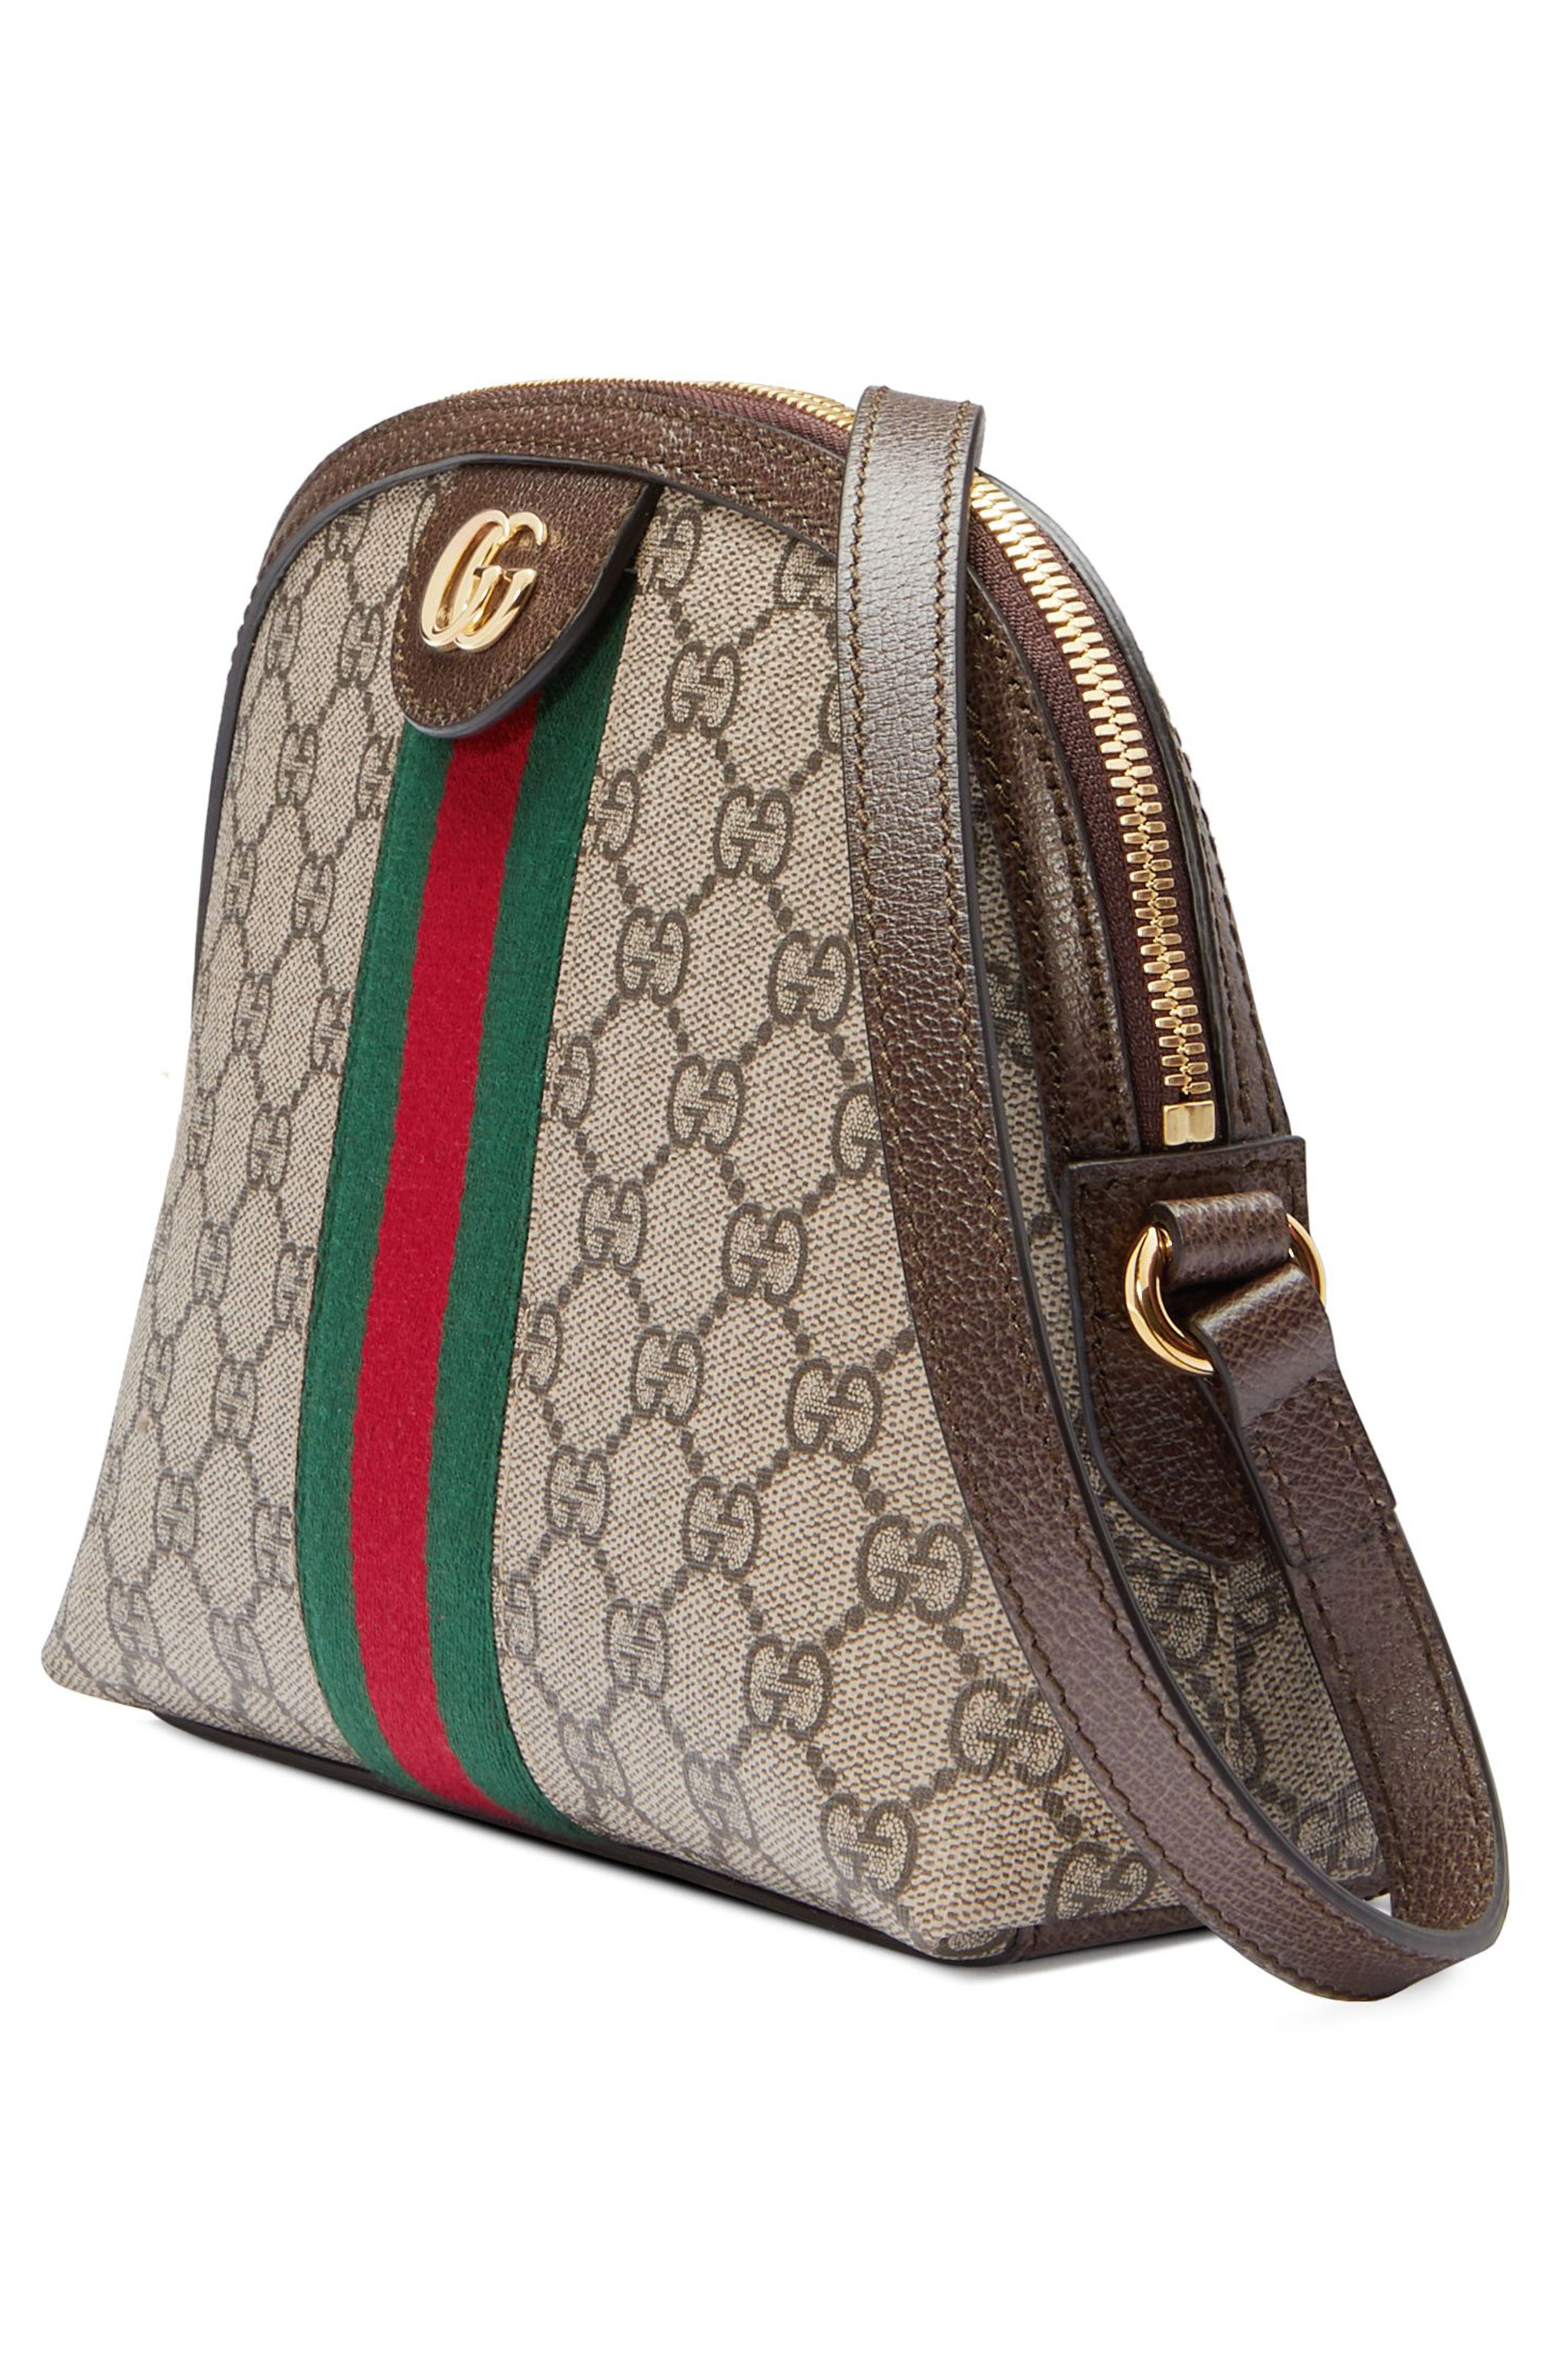 GUCCI, GG Supreme Canvas Shoulder Bag, Alternate thumbnail 5, color, BEIGE EBONY/ NERO/ RED